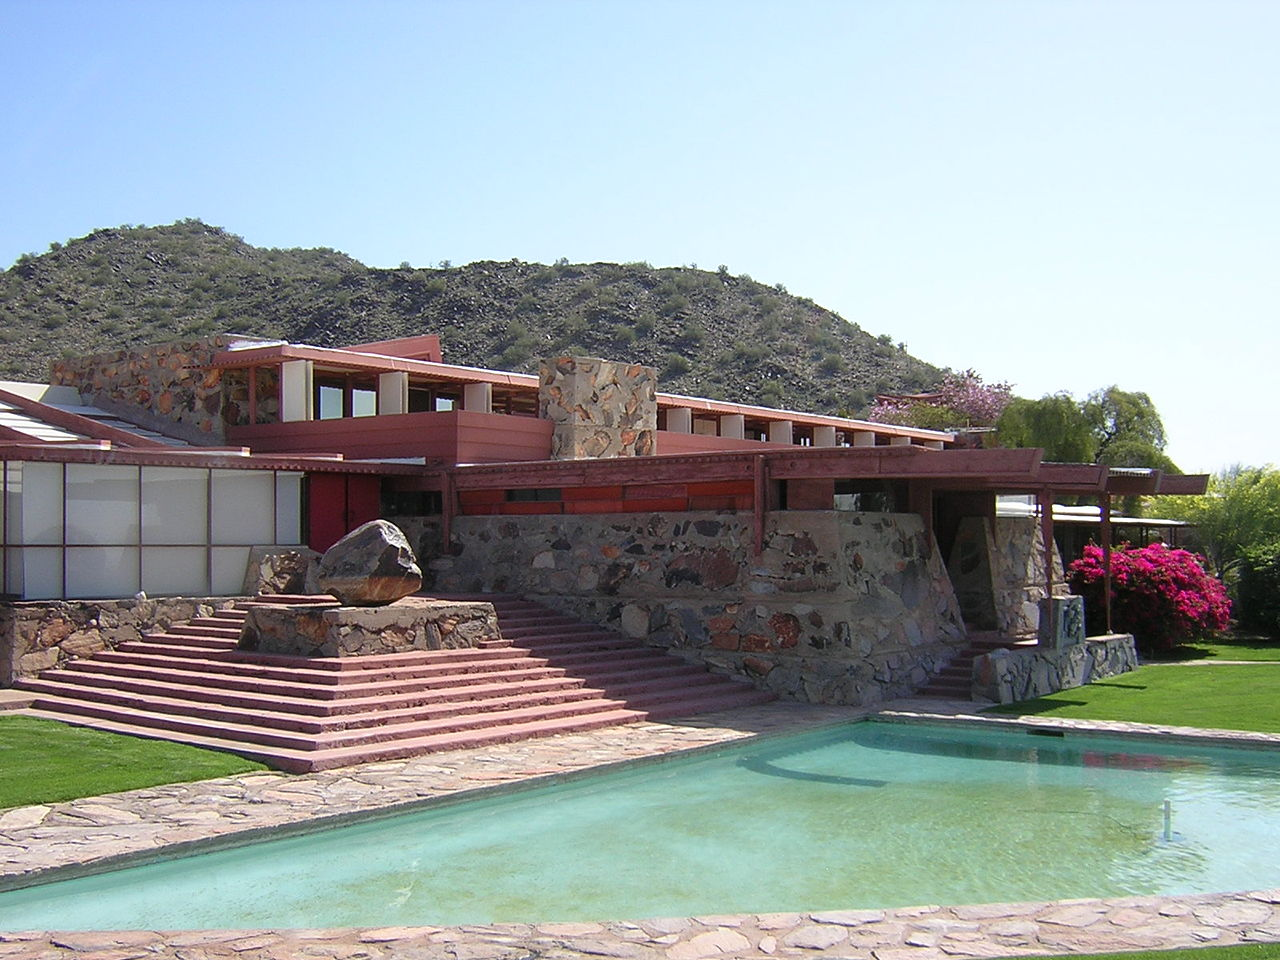 Attraction Place To Visit In Phoenix-Taliesin West